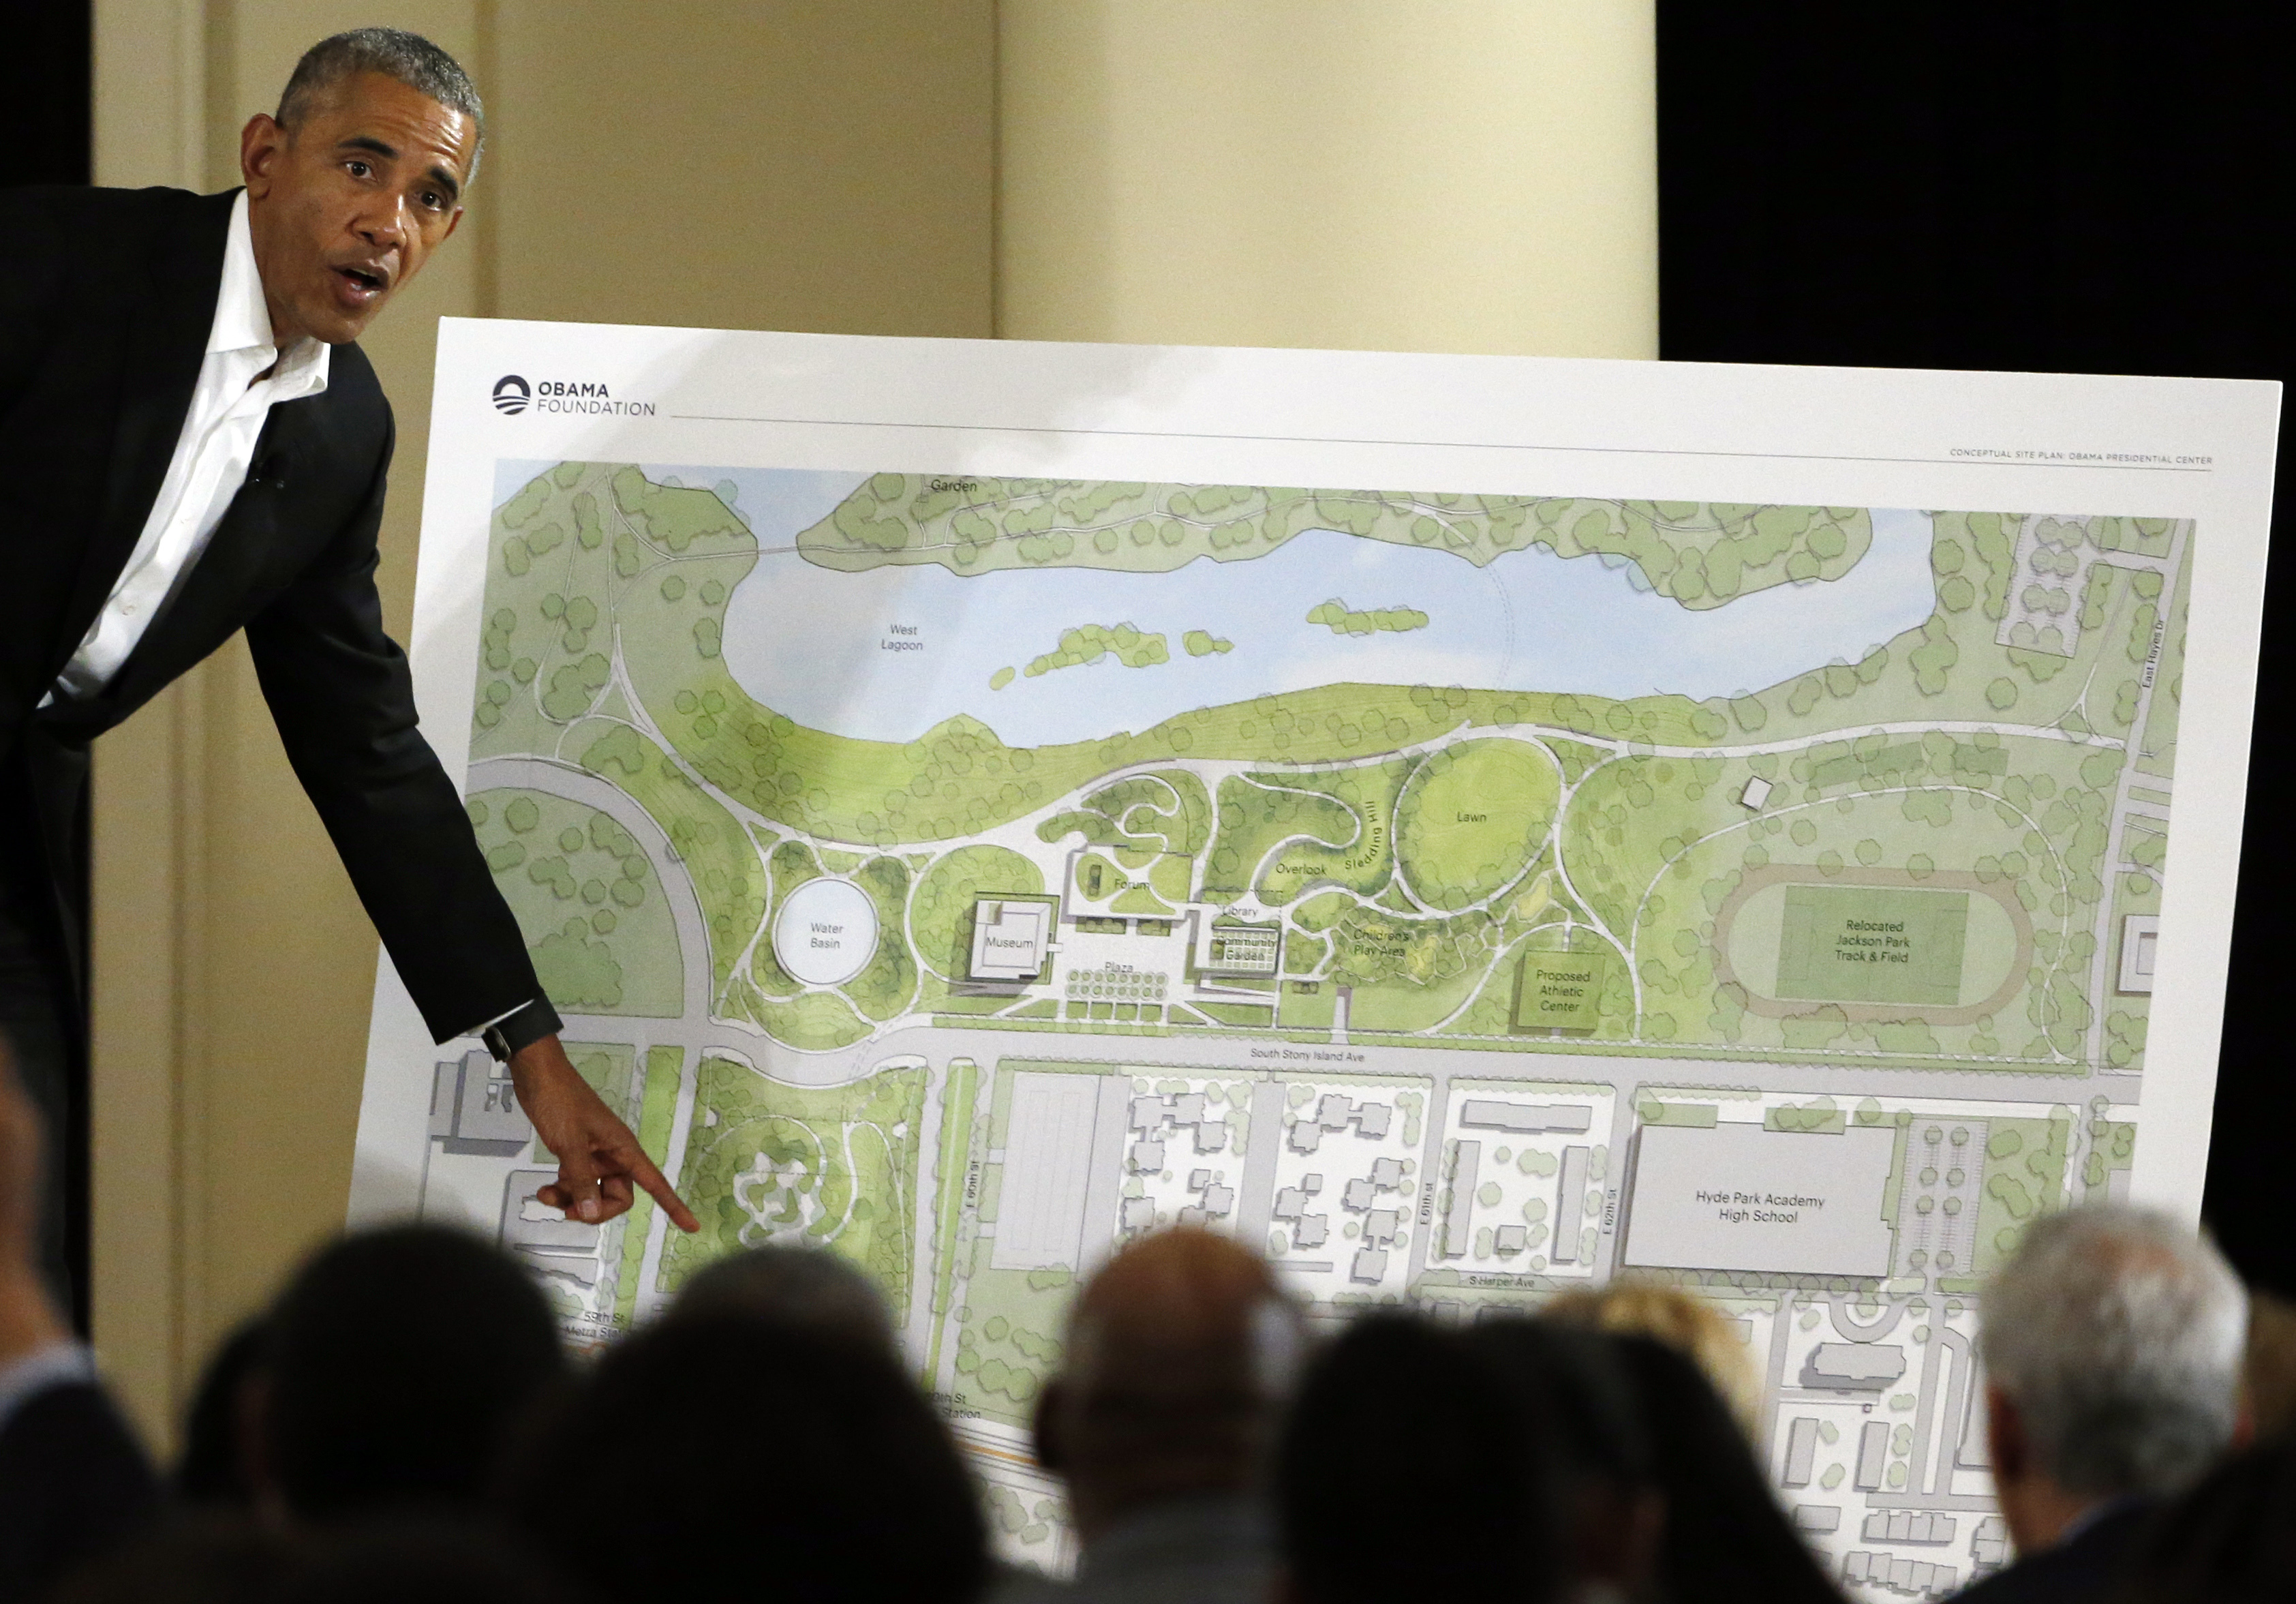 Judge: Construction On Obama Presidential Center Should Proceed